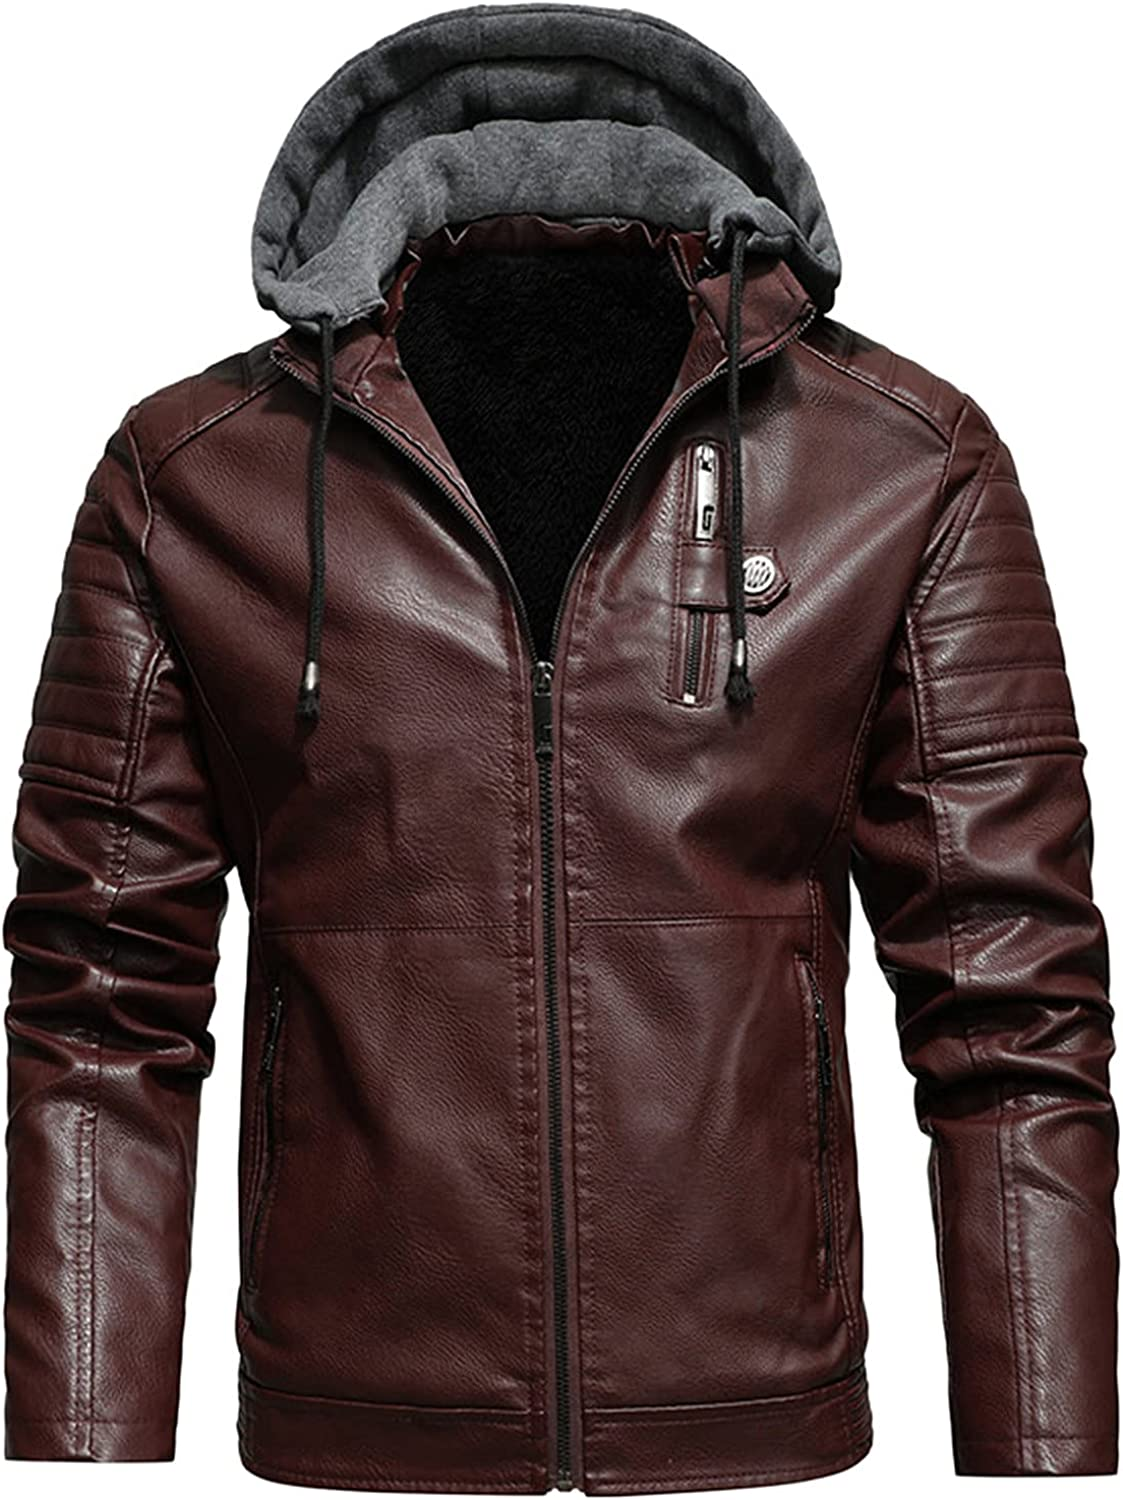 Men's Stand Collar Leather Jacket Coat Outwear Motorcycle Lightweight Faux Leather Outwear